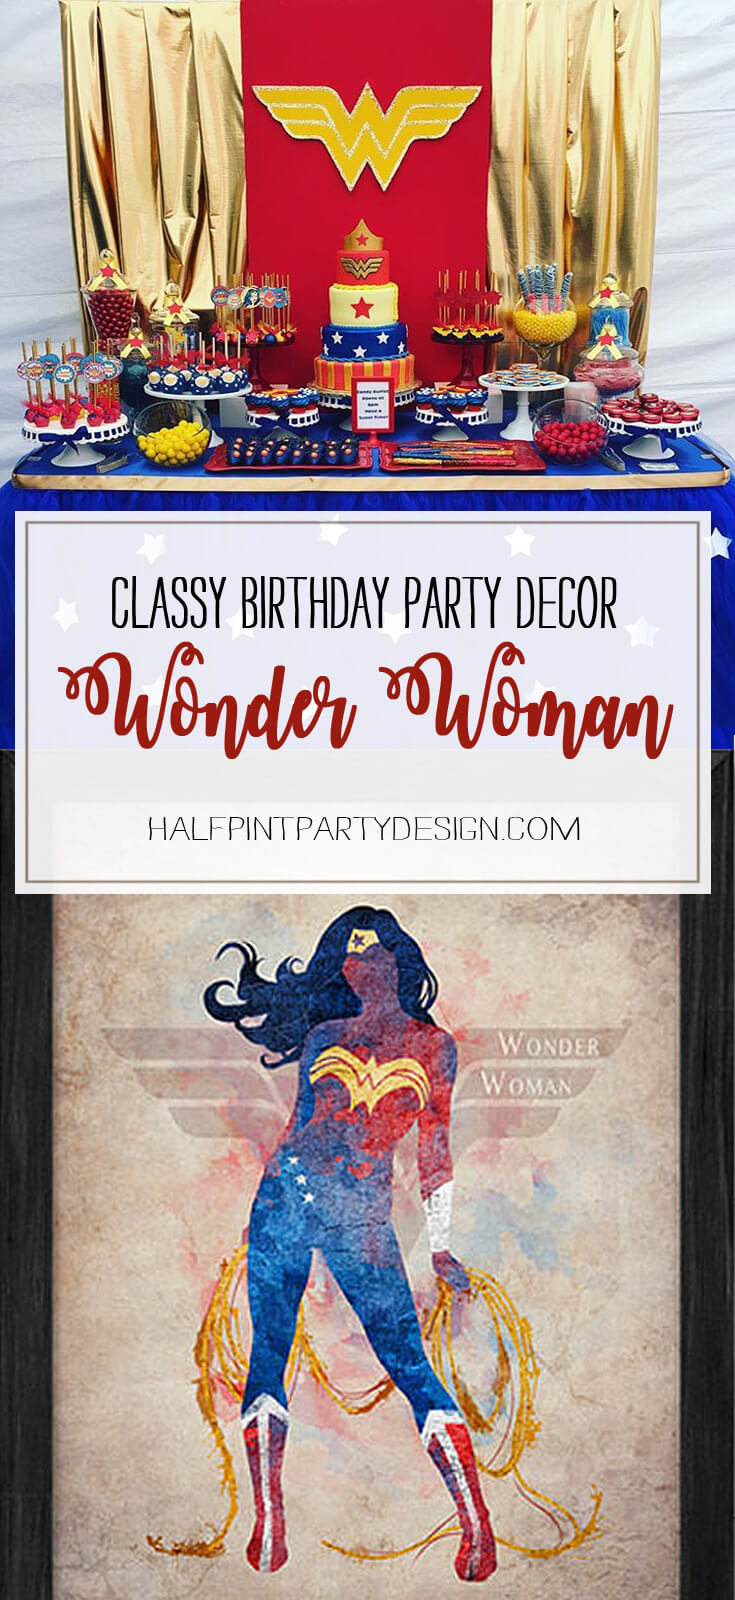 Classy Wonder Woman Birthday Party Decor Halfpint Party